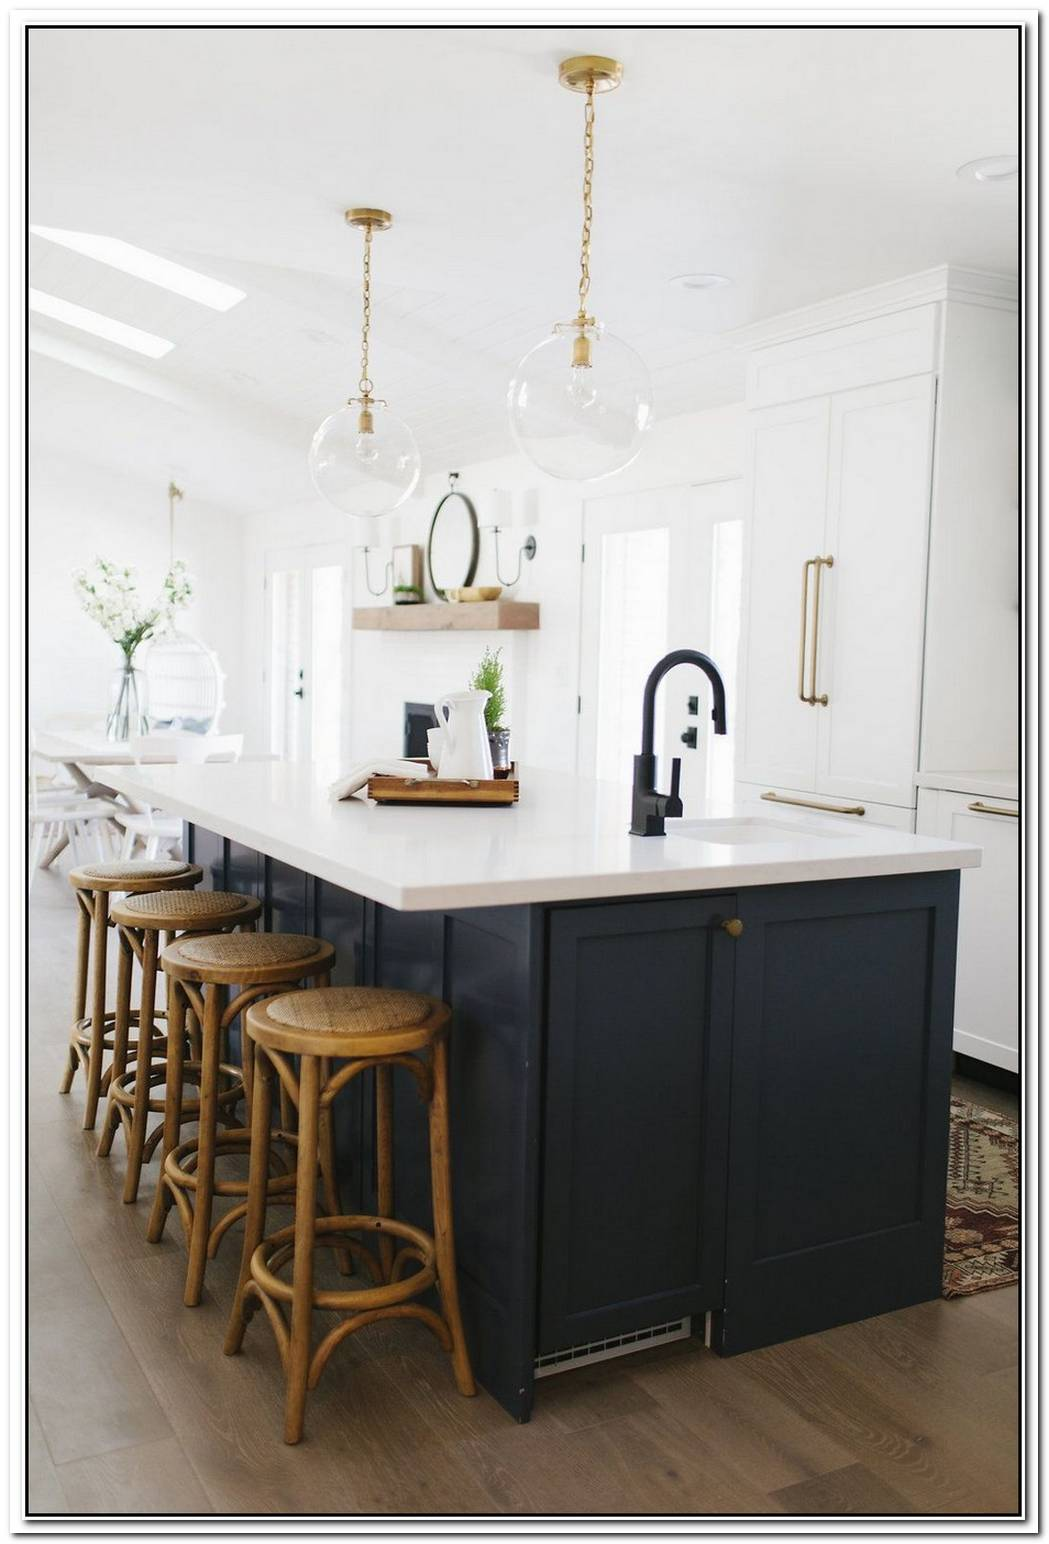 Brass Finishes And Organic Accents Combine For A Gorgeous Kitchen Design